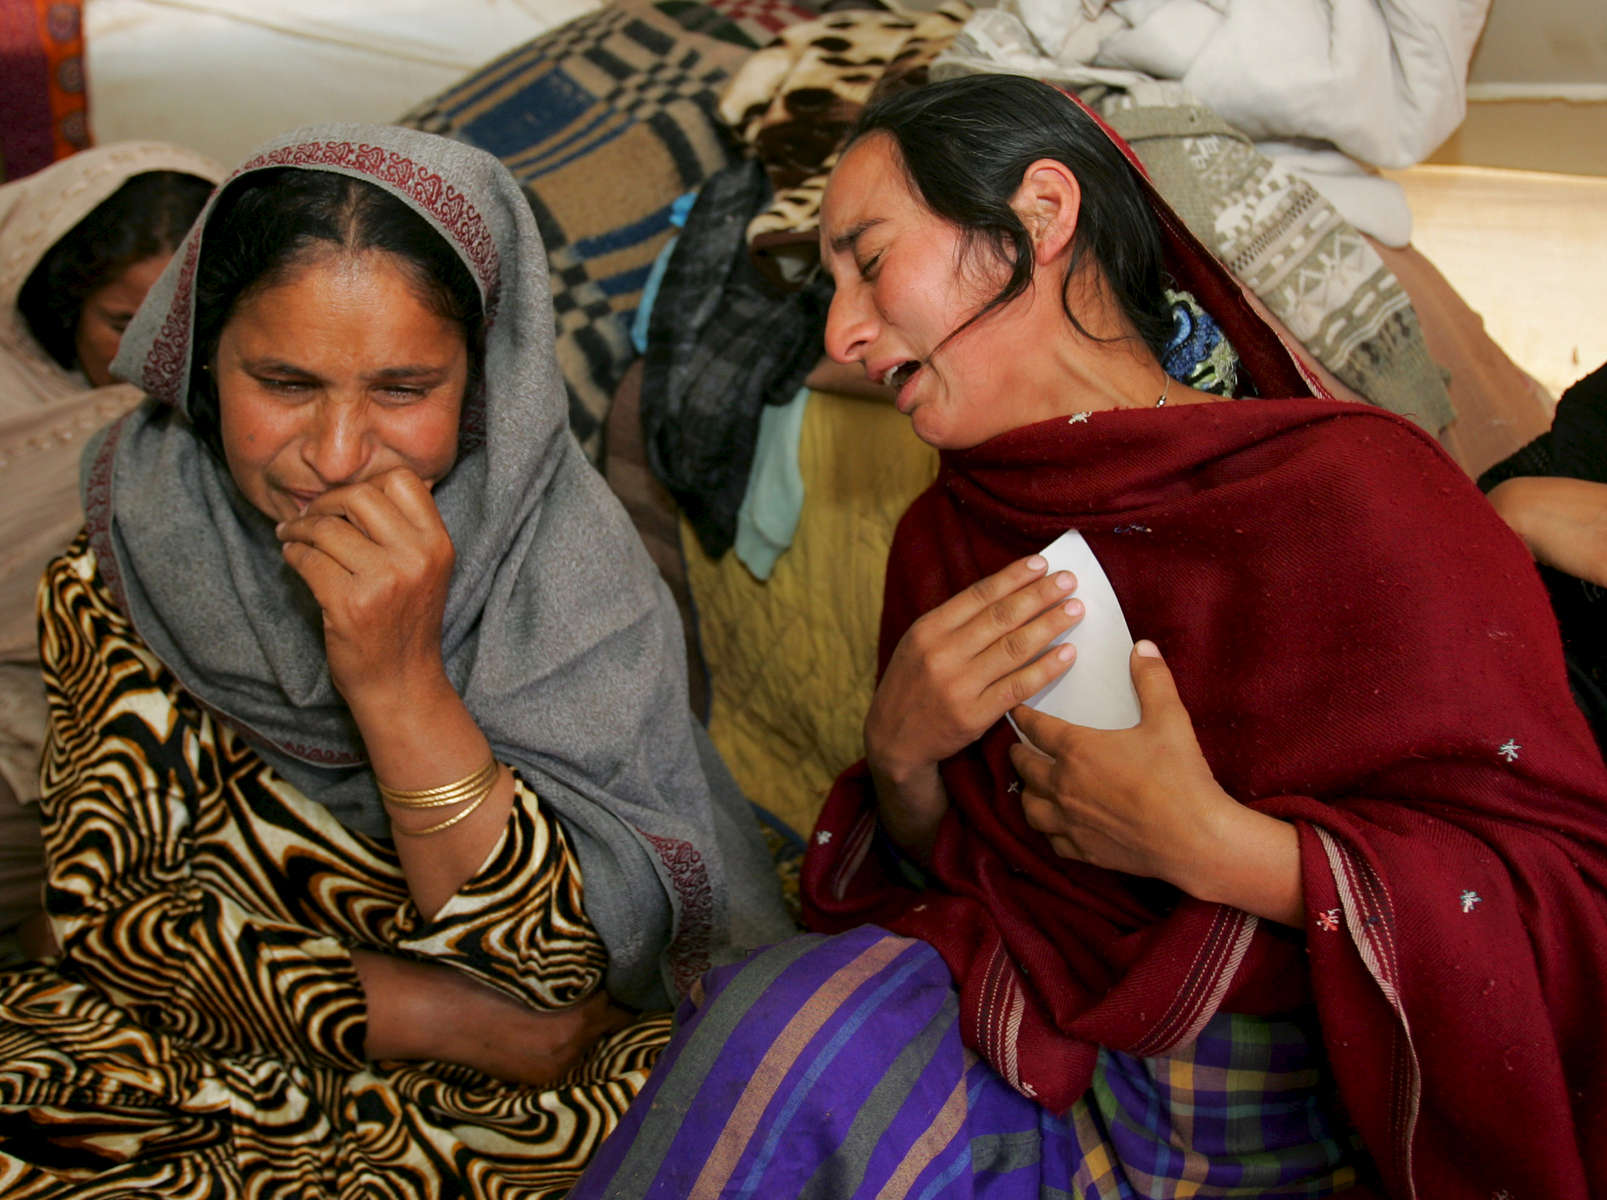 MUZAFFARABAD, PAKISTAN-OCTOBER 22:Naseem (L) and Nazmeen Akther (R) weep as they loook at photos of their children killed in the earthquake inside their tent in Muzaffarabad, Pakistan controlled Kashmir October 22,2005. the mothers joined relatives who visited them today to mourn their loss together. The current death toll is now believed to be over 50,000 from the South Asian earthquake that happened 2 weeks ago. Over 3 million people are without proper shelter and aid organizations including the U.N are warning that thousands could die in remote mountainous regions as Winter approaches. Atleast 1,400 died in Indian-Kashmir. (photo by Paula Bronstein /Getty Images)